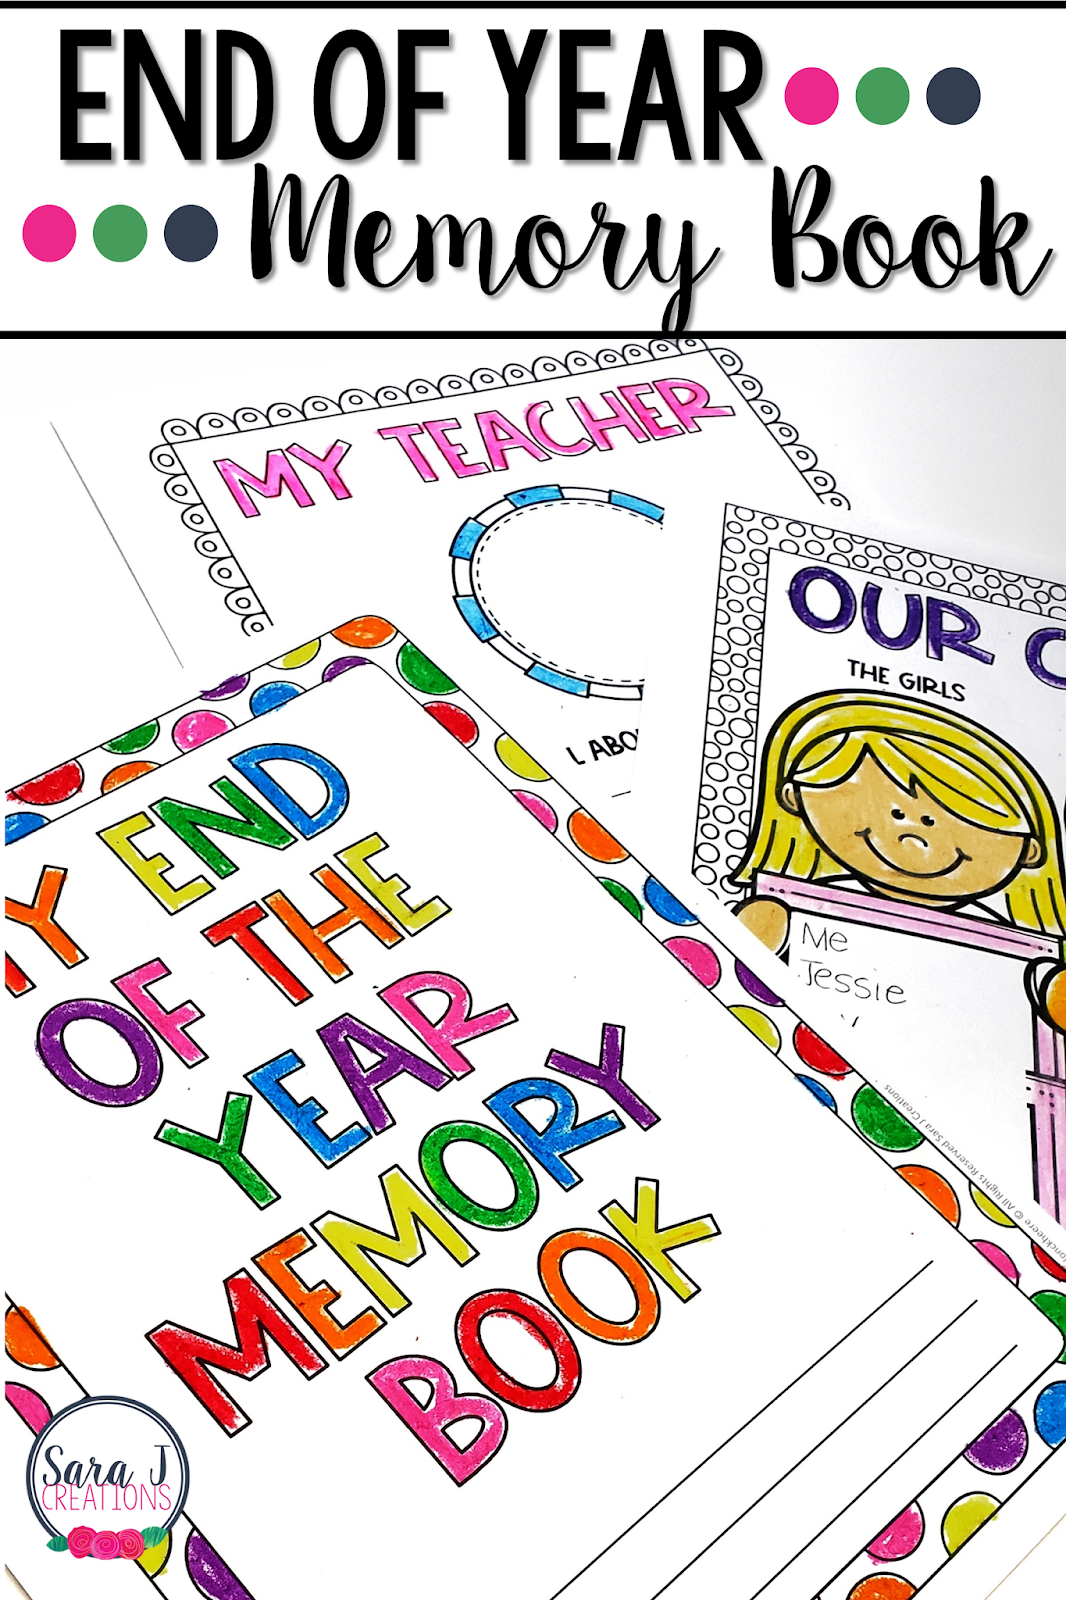 This printable end of the year memory book is the perfect activity for kids. Help them countdown the end of the school year with this fun and reflective idea. With 40 pages included, you can pick and choose what pages work for your elementary classroom.